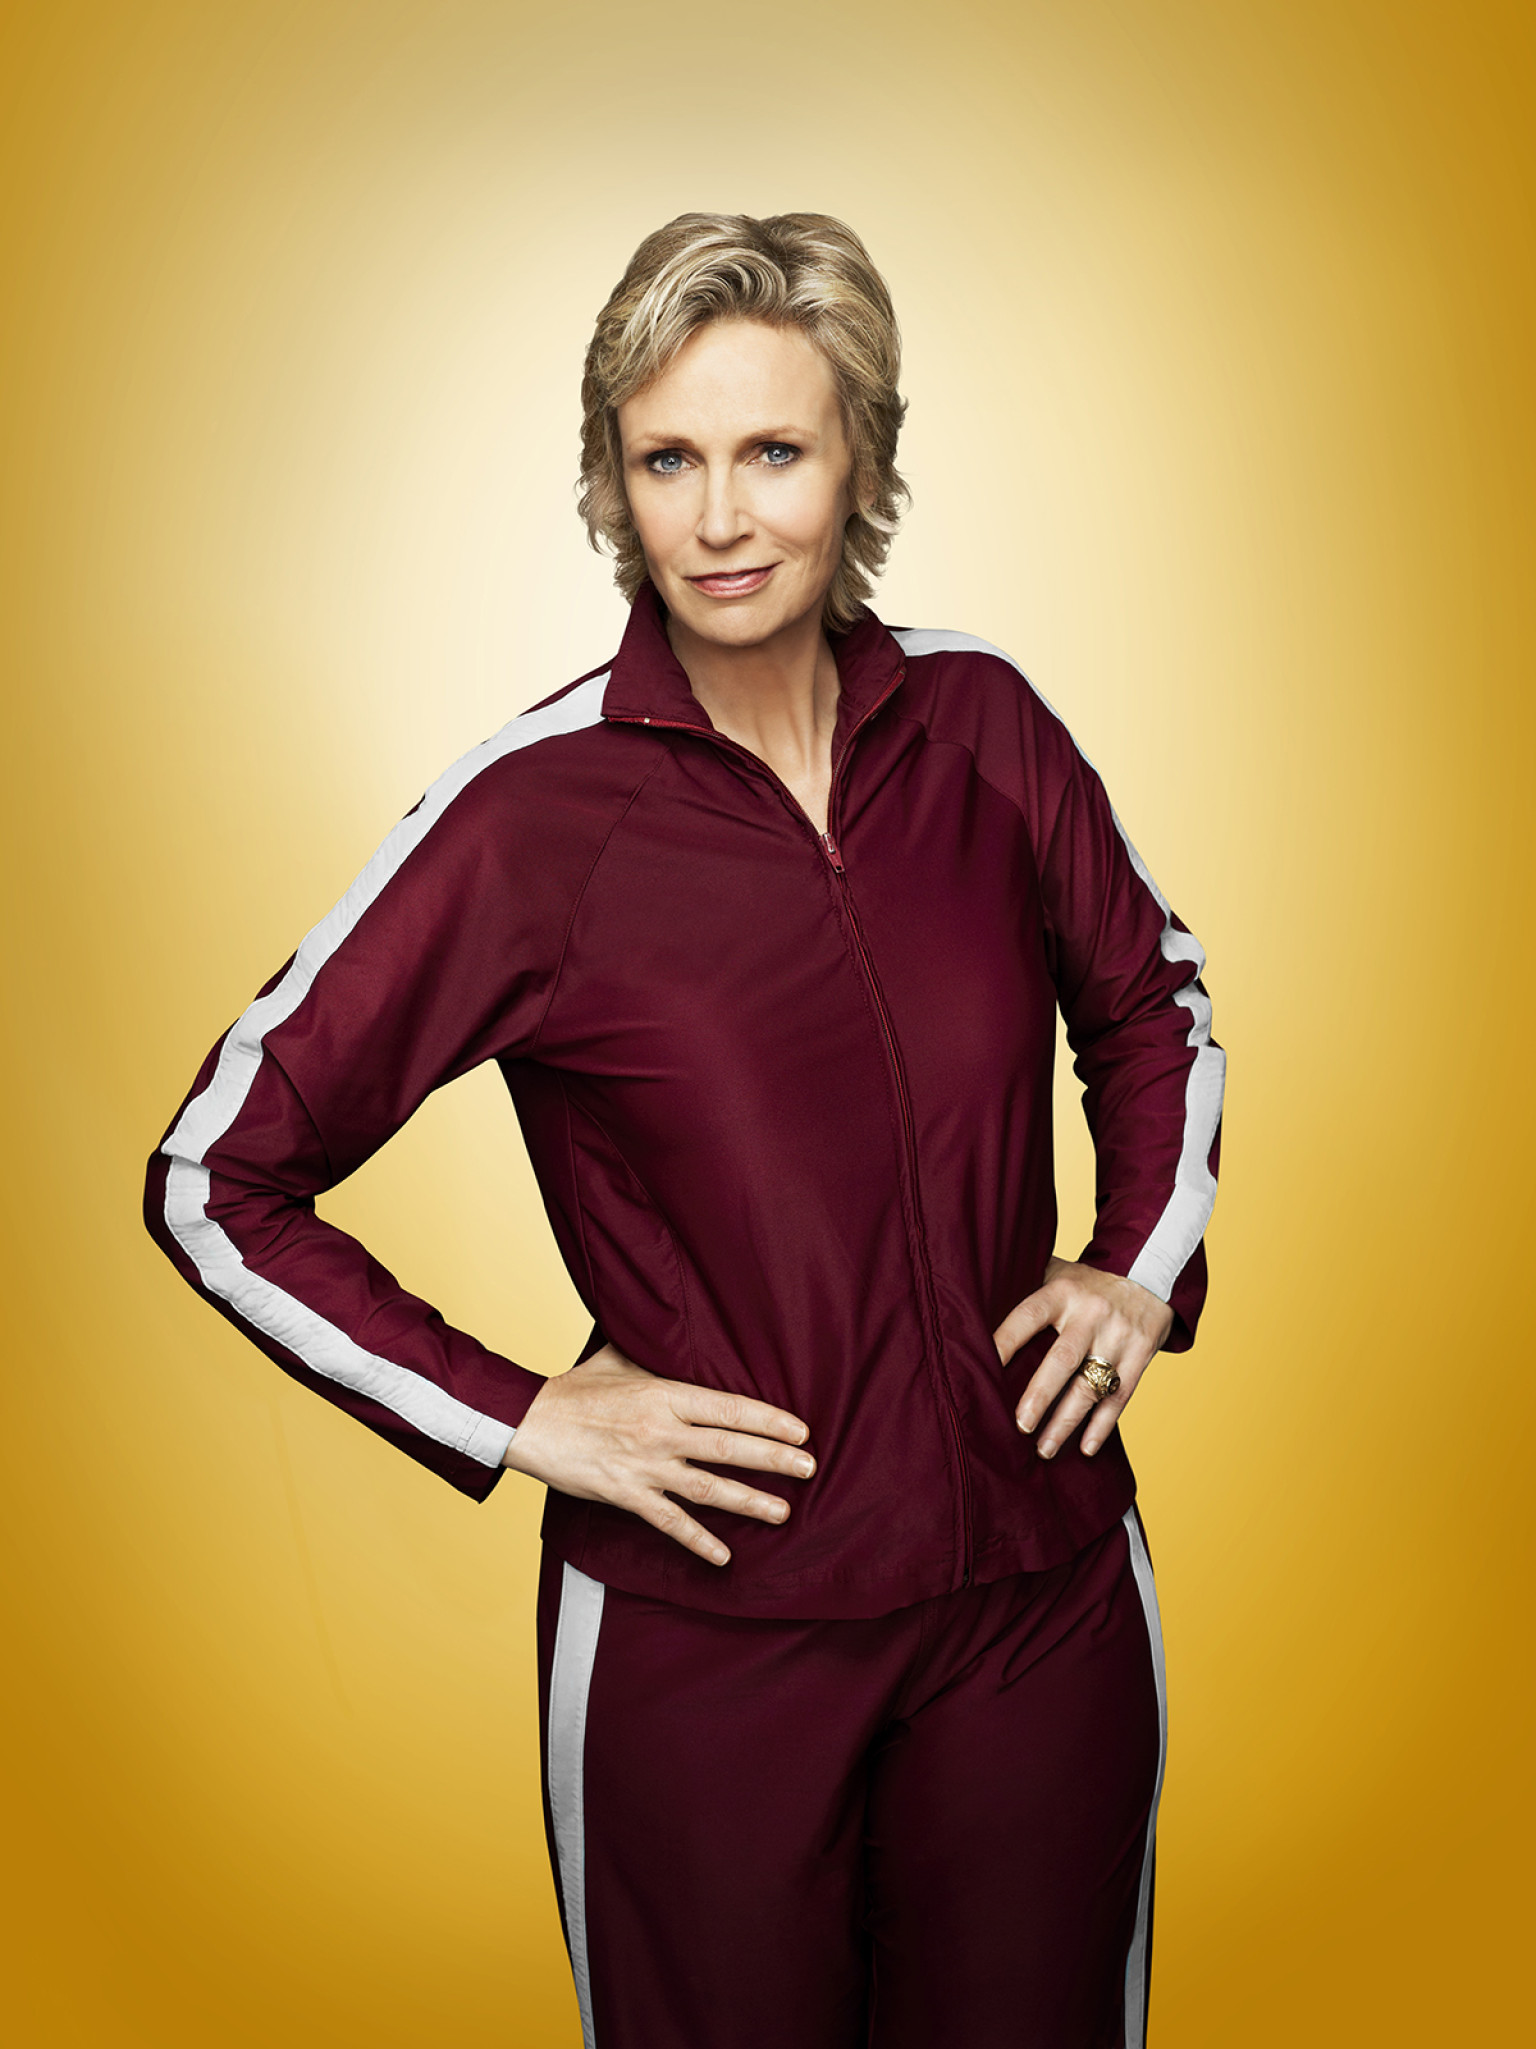 jane lynch as sergeant calhounjane lynch height, jane lynch wife, jane lynch height weight, jane lynch glee, jane lynch zimbio, jane lynch hold 4 you, jane lynch ellen degeneres, jane lynch christmas album, jane lynch desperate housewives, jane lynch career, jane lynch wedding photos, jane lynch consent to treatment, jane lynch lara embry, jane lynch criminal minds, jane lynch entourage, jane lynch 2016, jane lynch behind the voice actors, jane lynch as sergeant calhoun, jane lynch steppenwolf, jane lynch on ellen